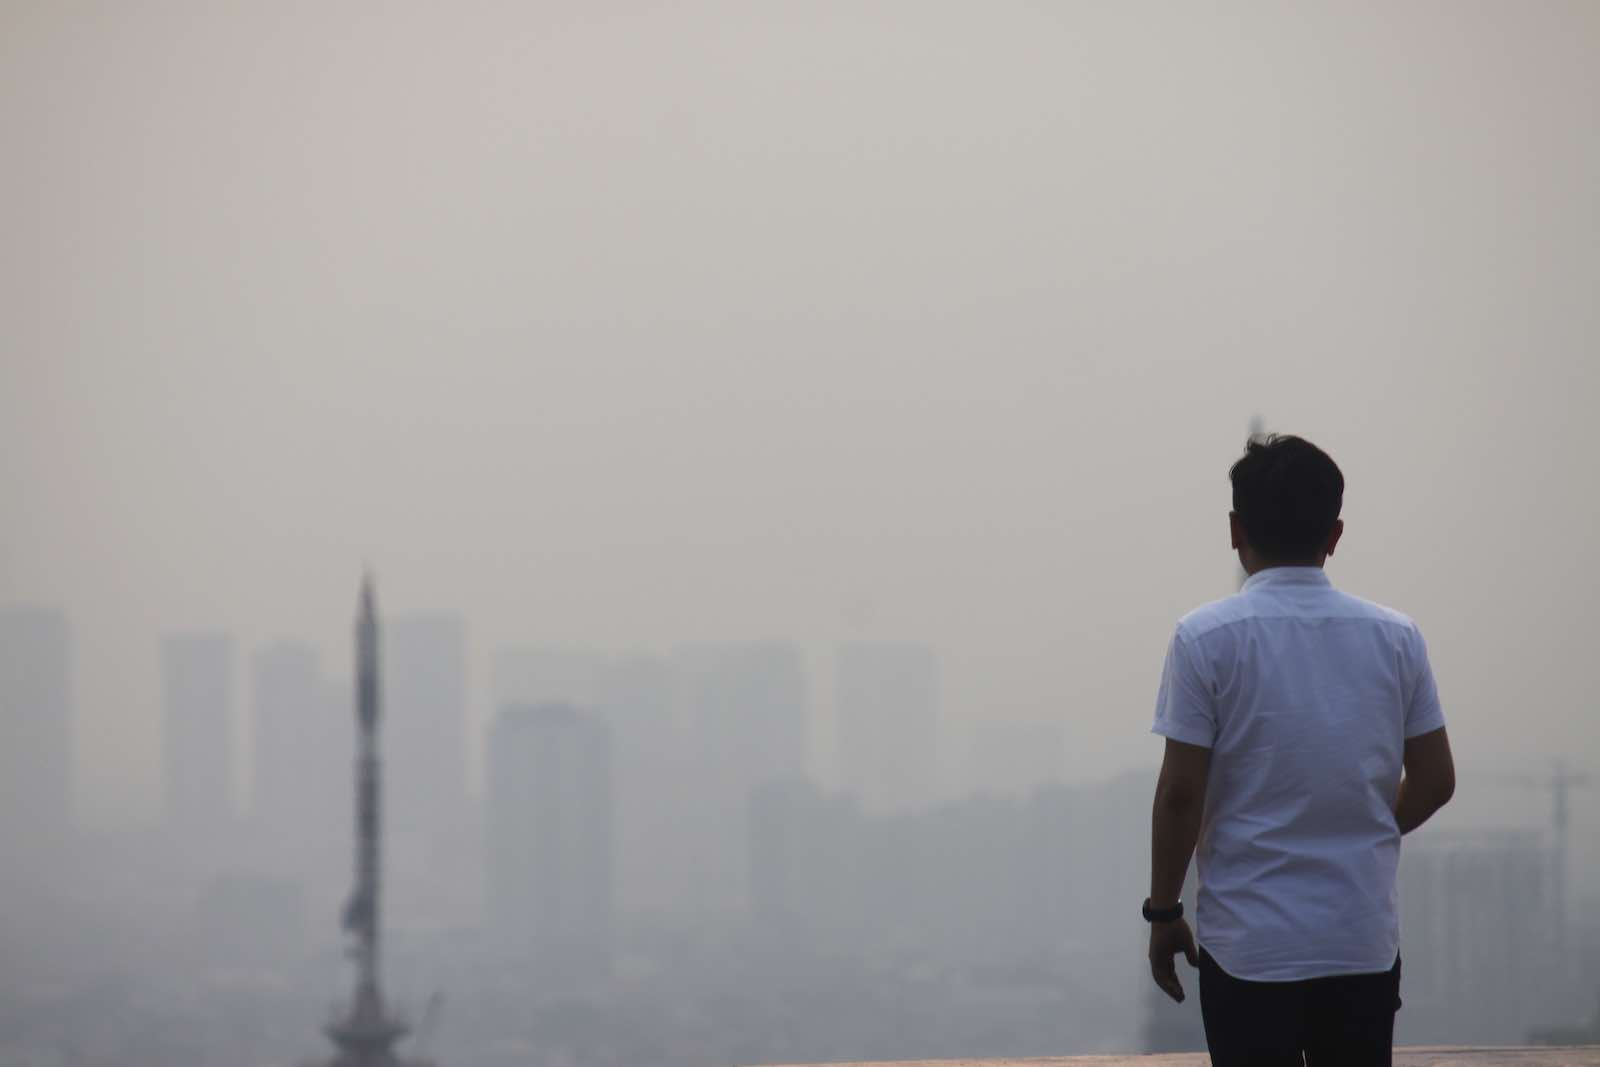 Jakarta, blanketed in smog (Photo: Aditya Irawan via Getty)